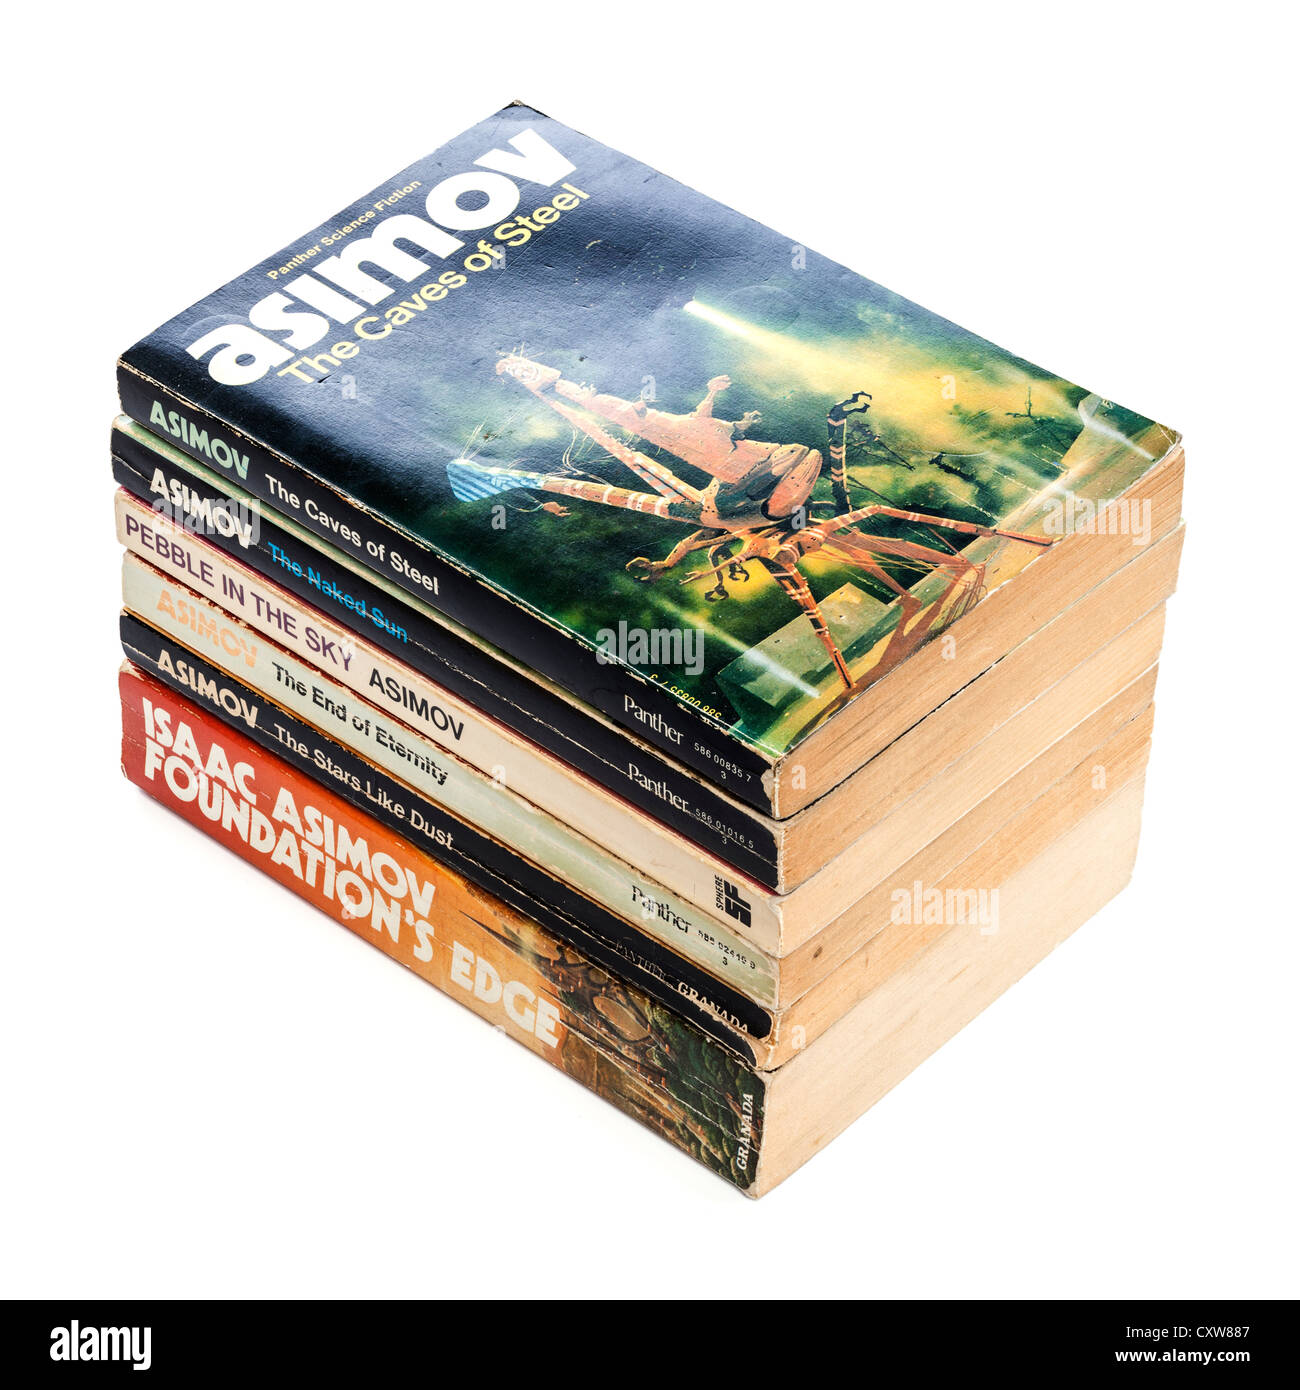 A stack of Science Fiction paperbacks by Isaac Asimov, on a white background with soft natural shadow. - Stock Image